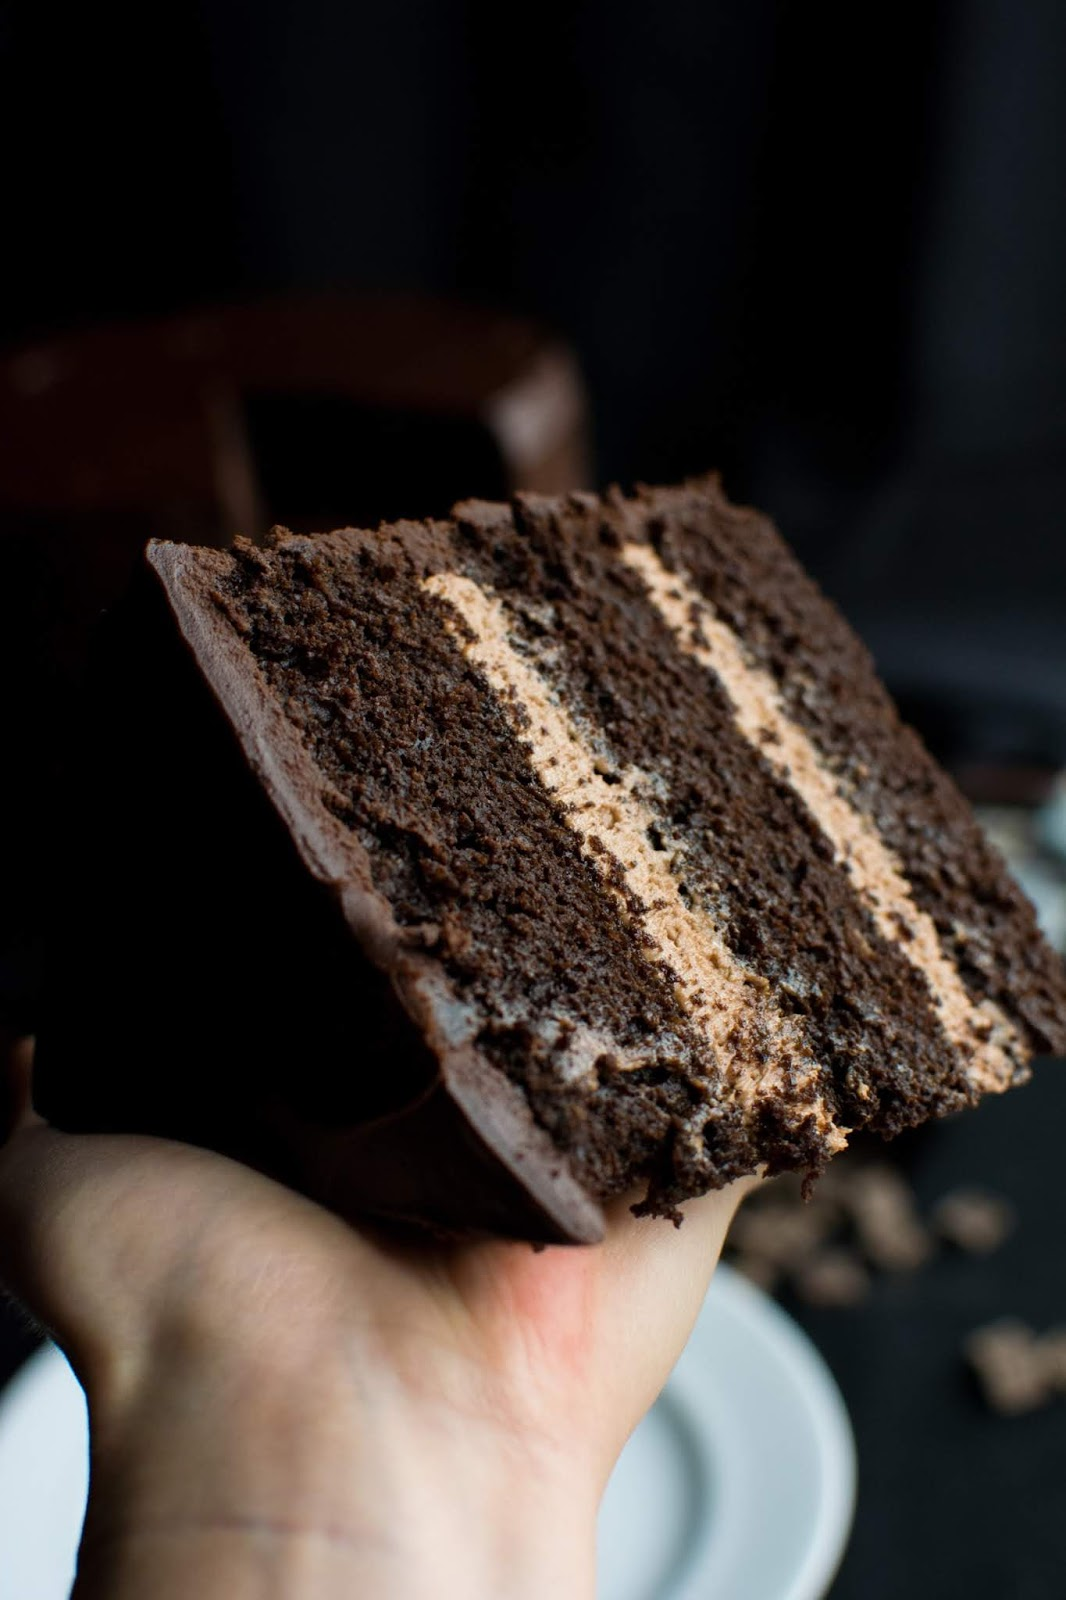 """Miss Trunchbull's Chocolate Cake - The cake from """"Matilda"""" that we all swooned over! Like The Trunchbull, I'm sure you'll agree that this is """"the most scrumptious cake in the entire world."""" One of my favorite movies of all-time is Matilda. I remember when it was about to come out in theaters, and I could NOT wait to go and see it."""